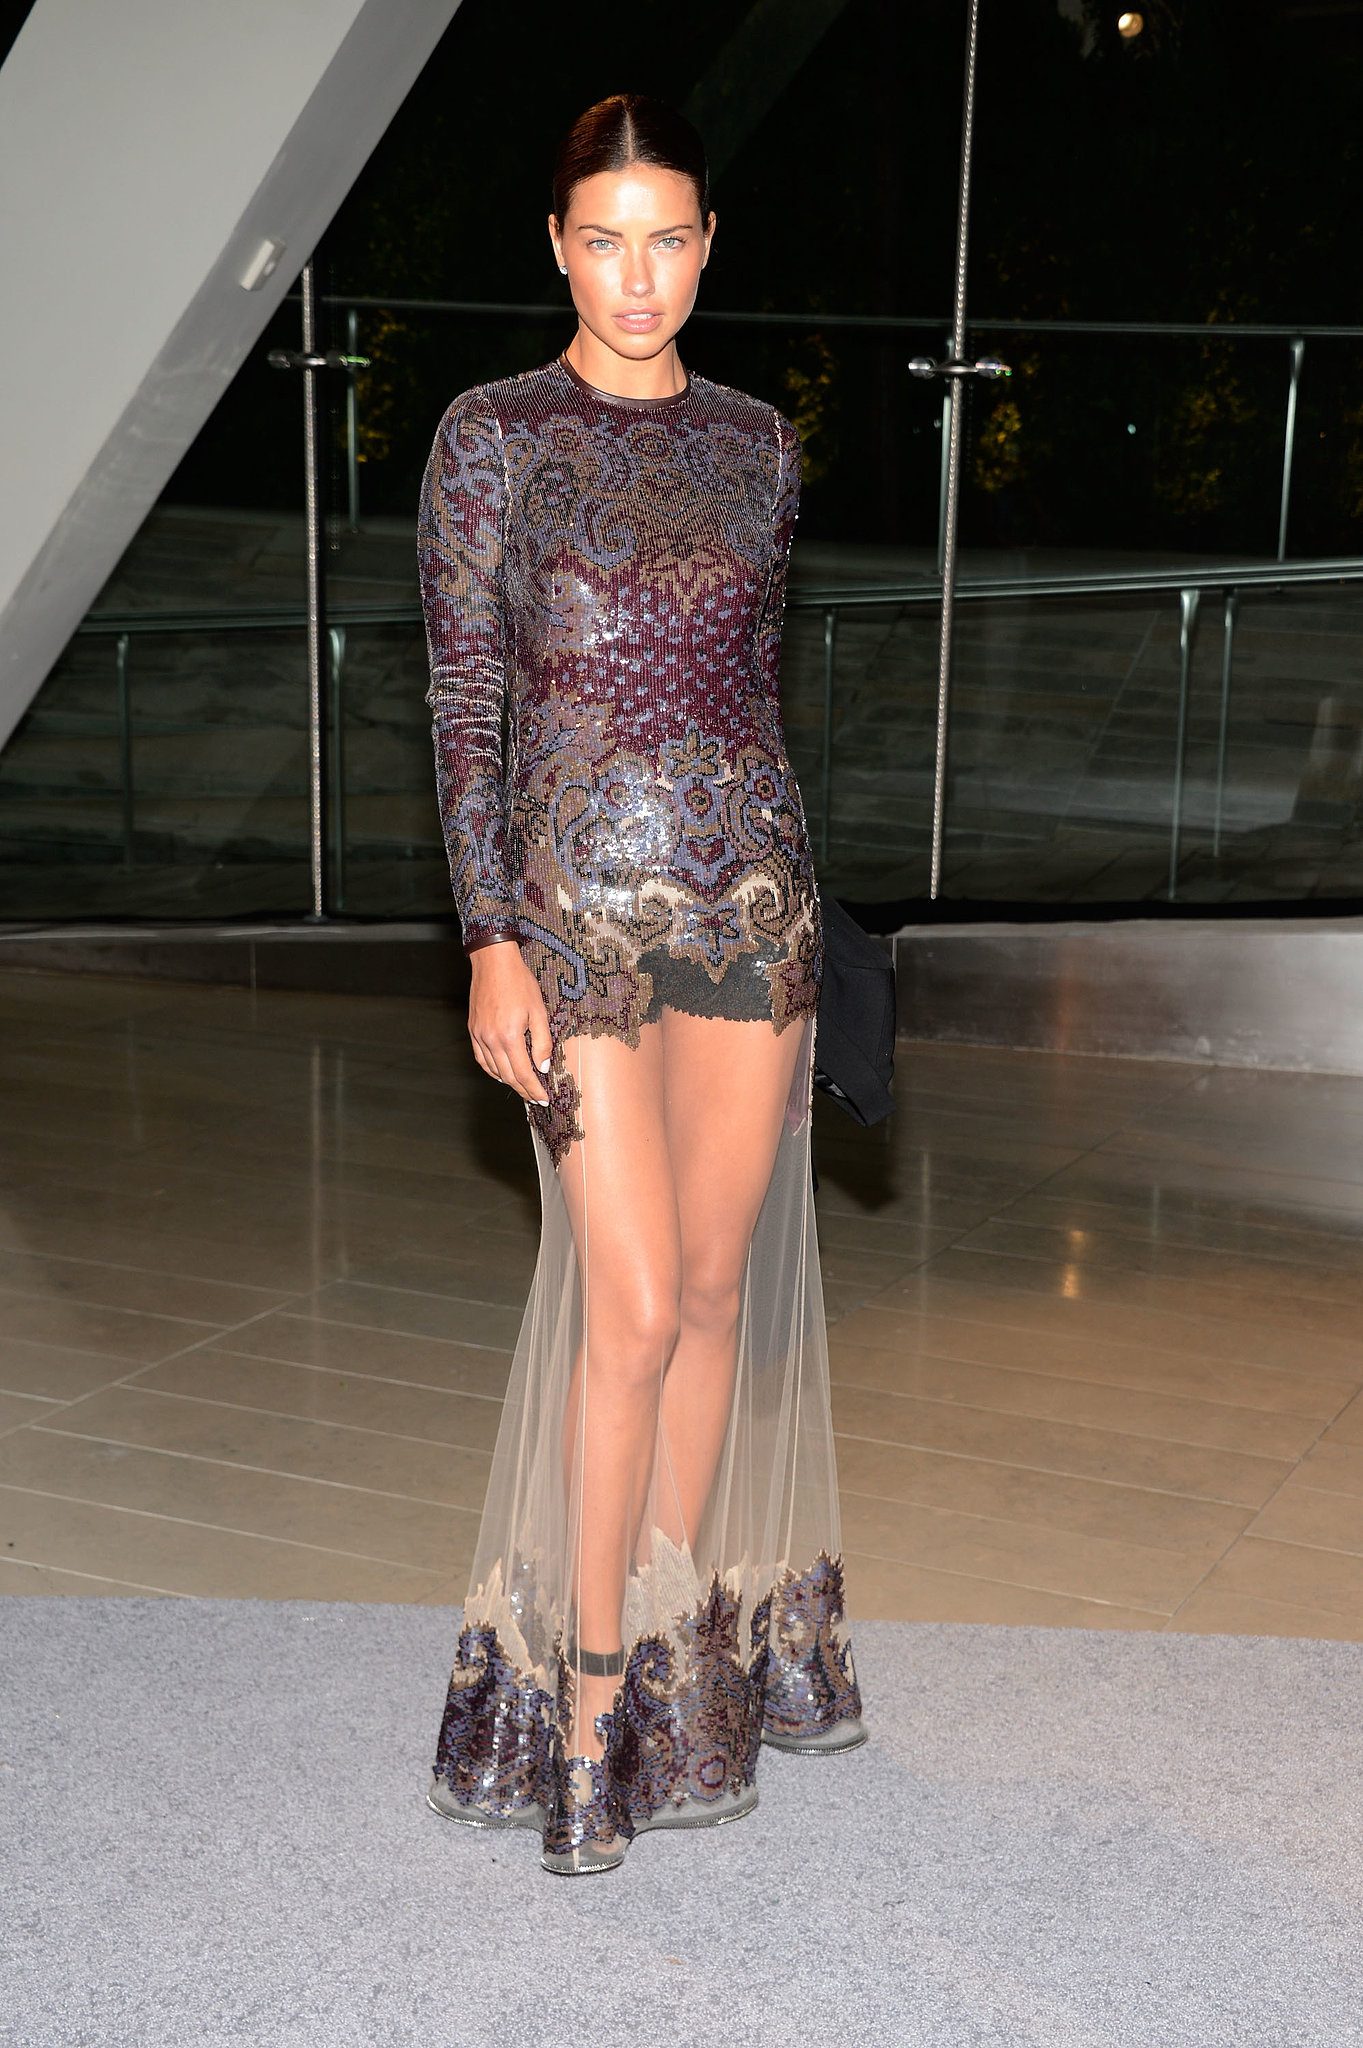 Adriana Lima, in Givenchy by Riccardo Tisci, at the 2013 CFDA A